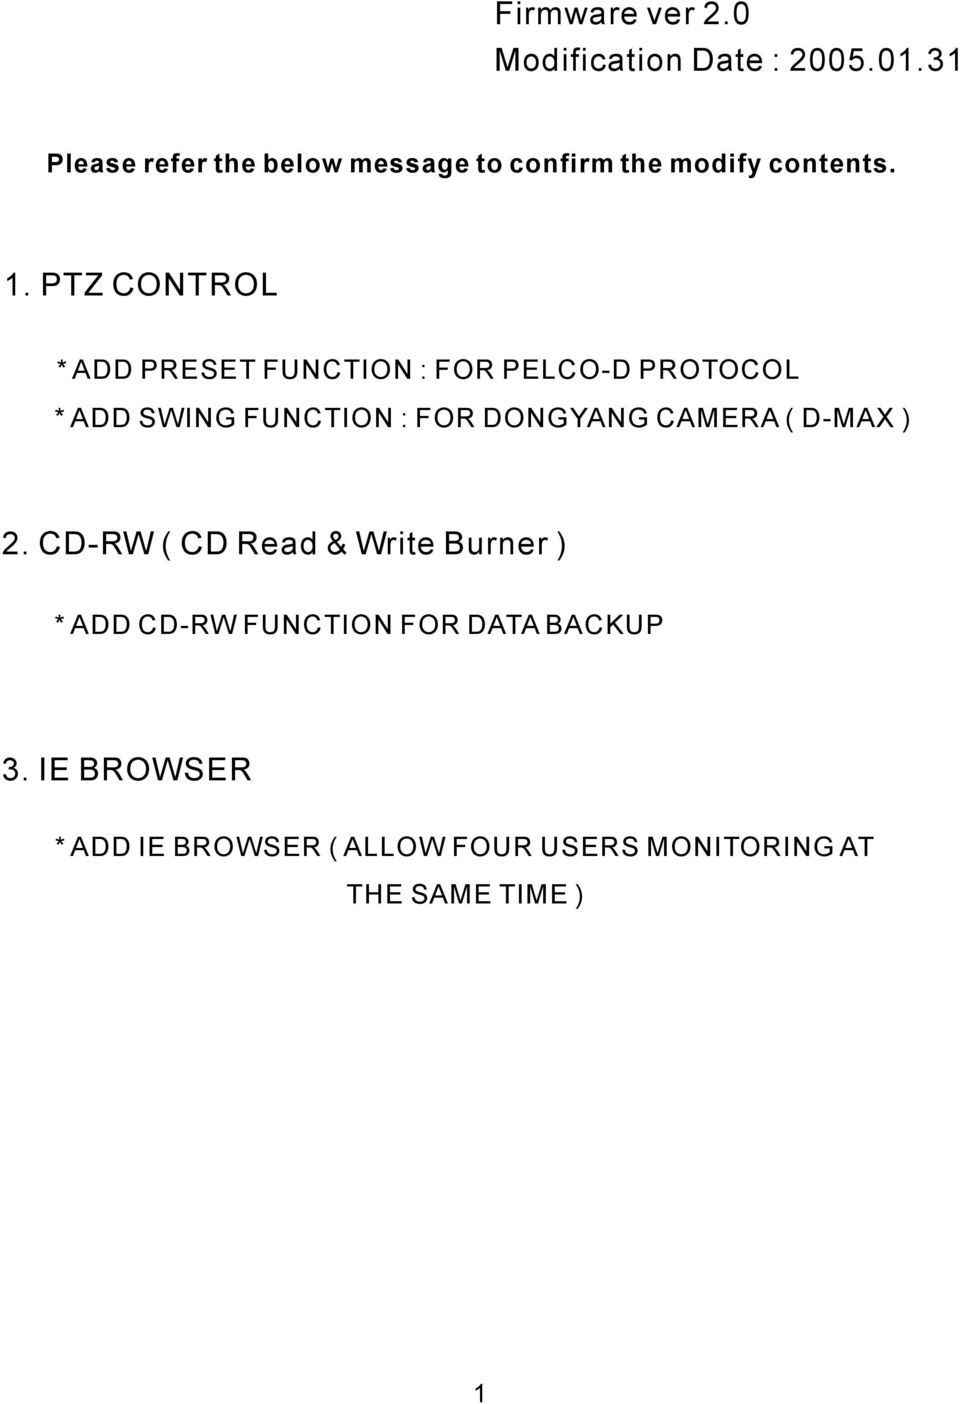 PTZ CONTROL * ADD PRESET FUNCTION : FOR PELCO-D PROTOCOL * ADD SWING FUNCTION : FOR DONGYANG